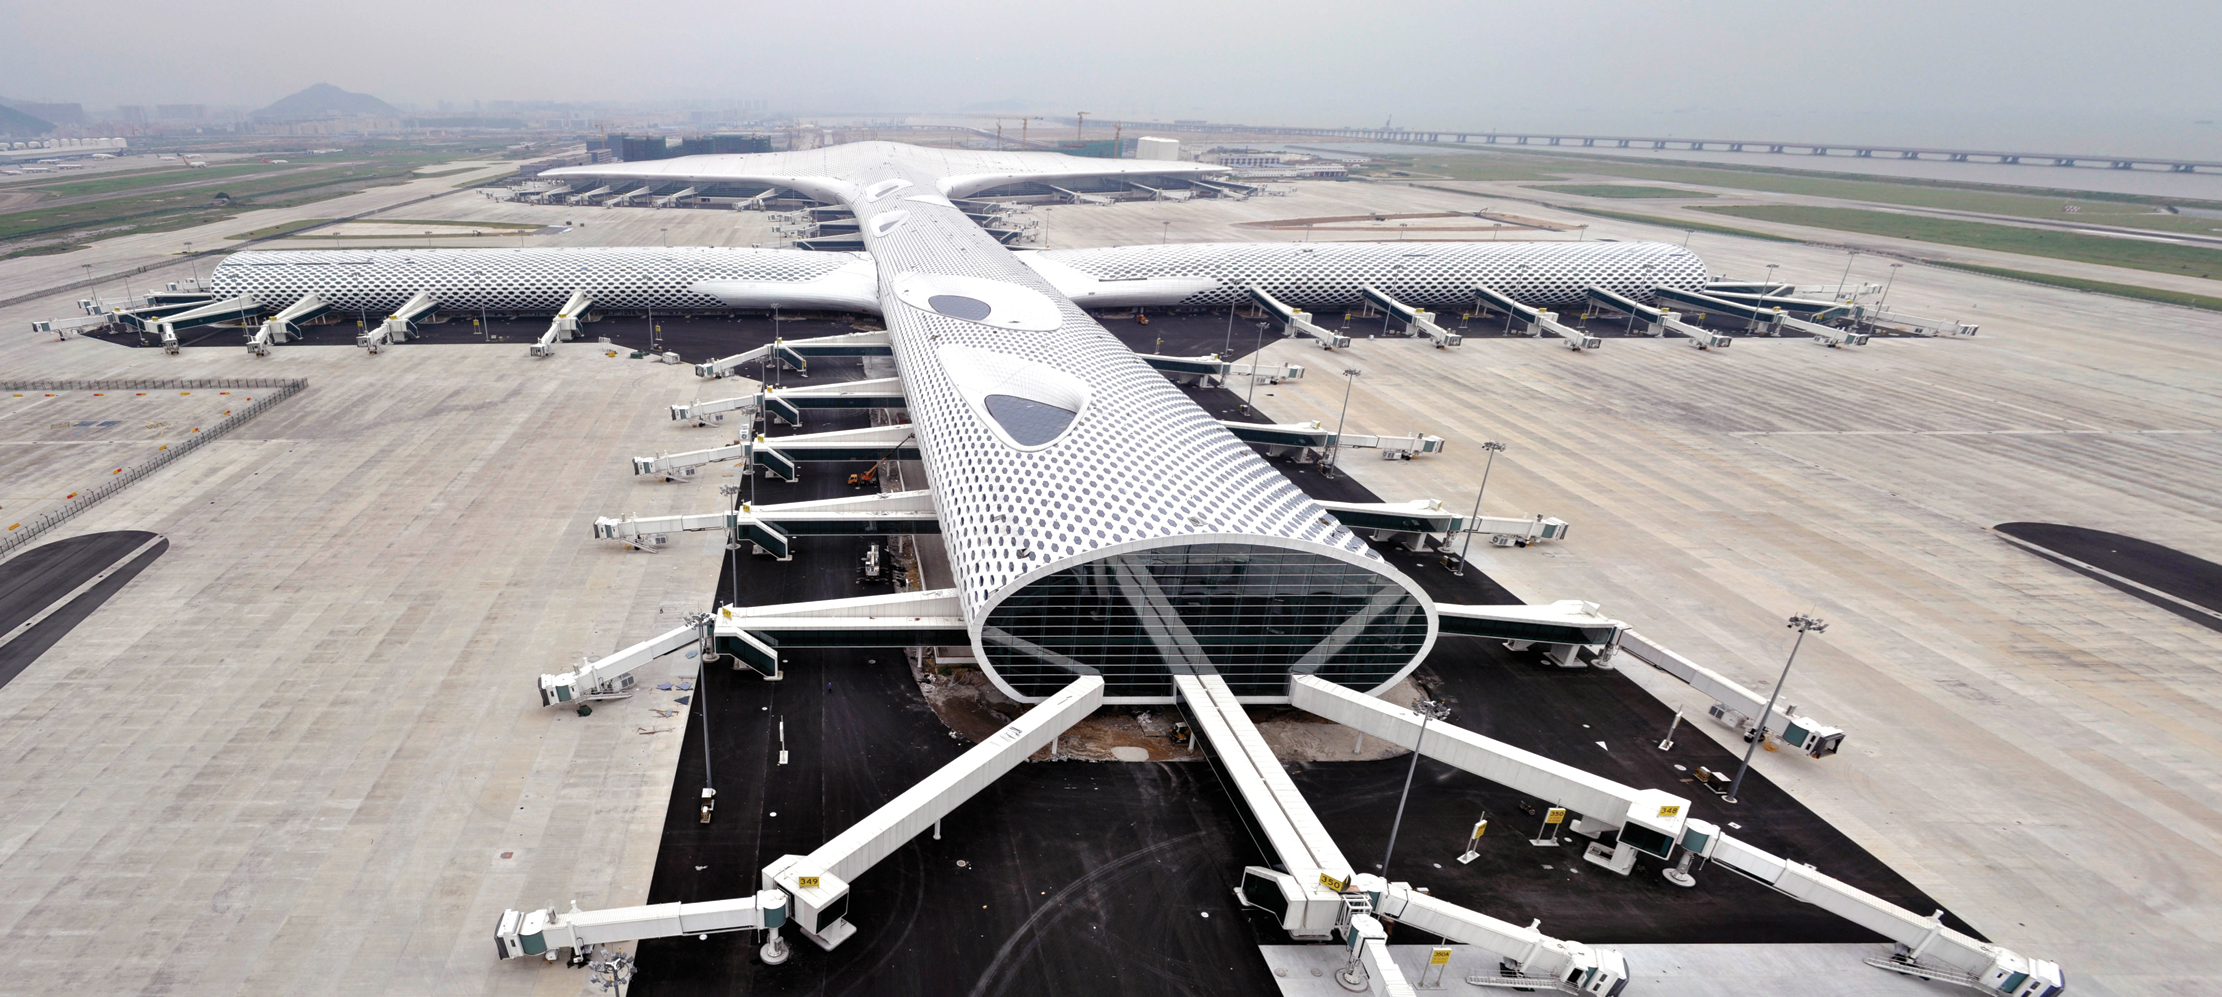 The 1.5km long terminal evokes the image of a manta ray